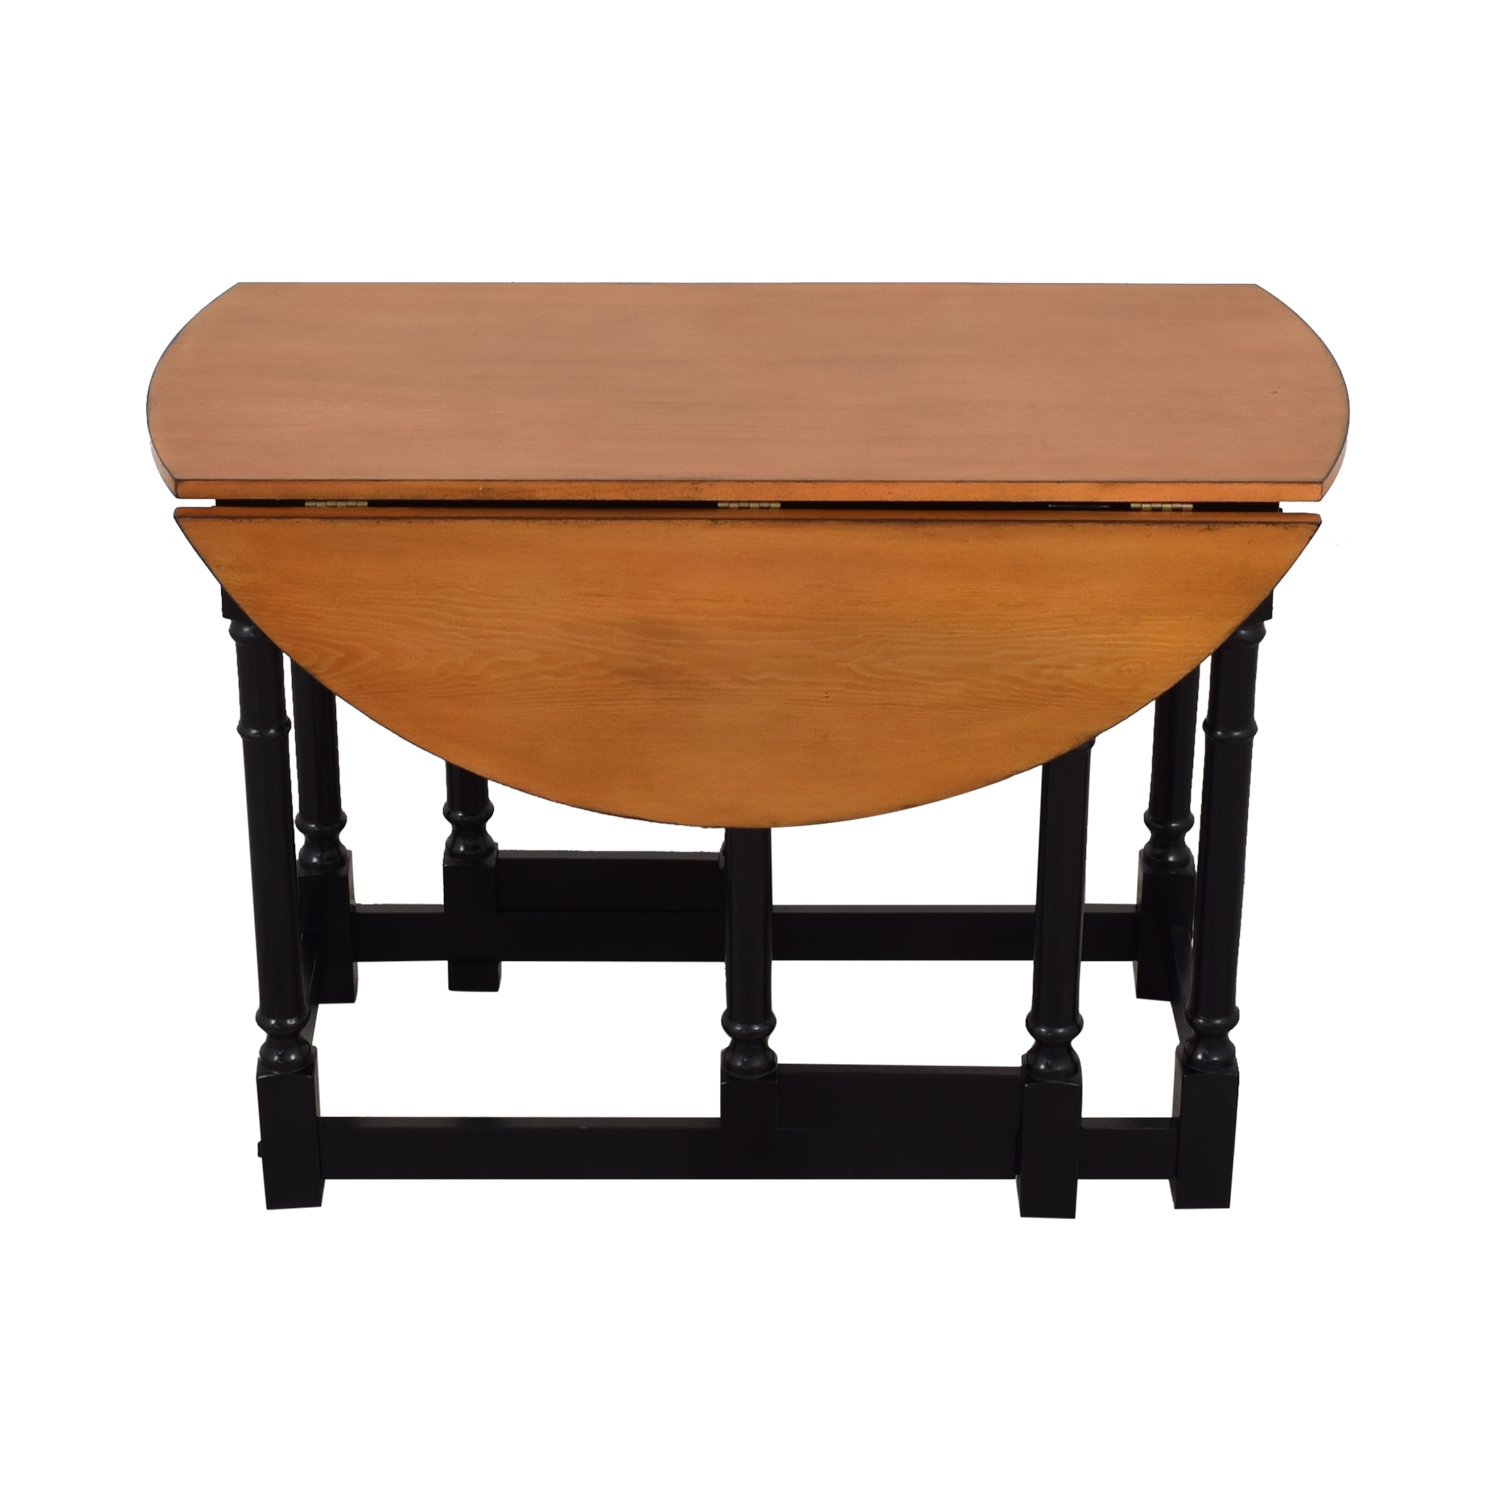 buy Accent Trend Solid Wood Gateleg Table Accent Trend